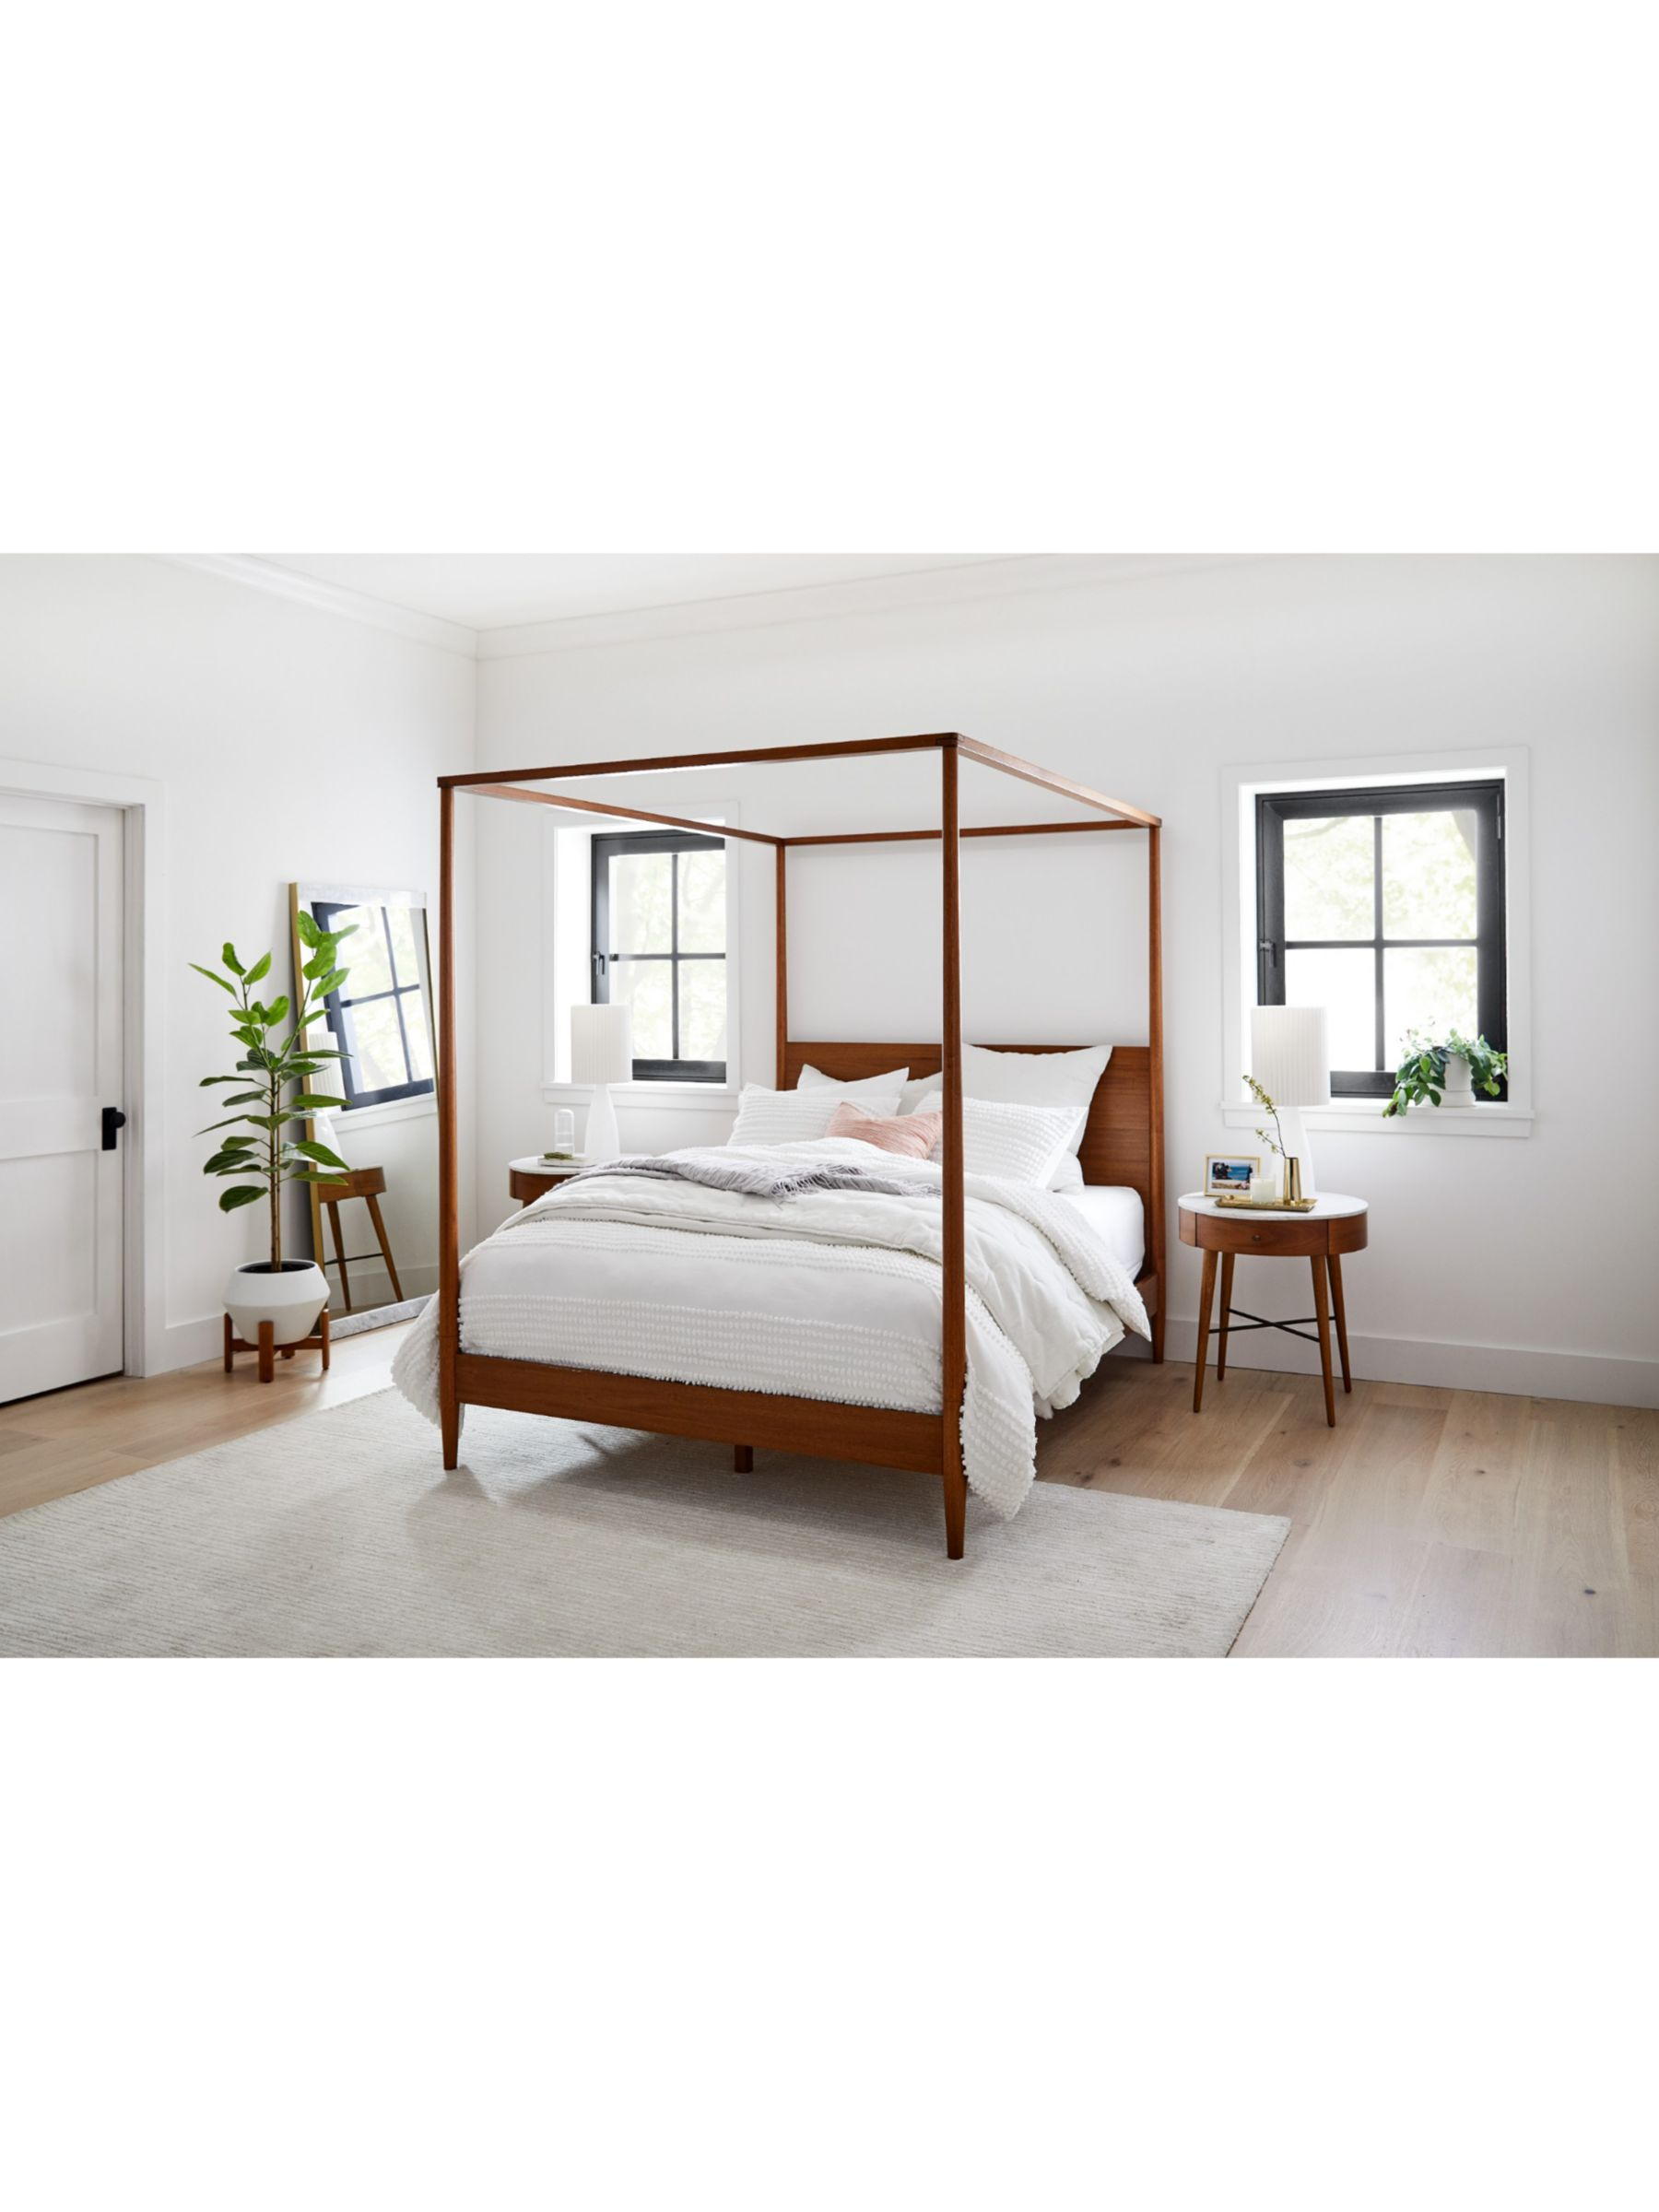 Picture of: West Elm Mid Century Canopy Bed Frame King Size Fsc Certified Eucalyptus Acorn At John Lewis Partners